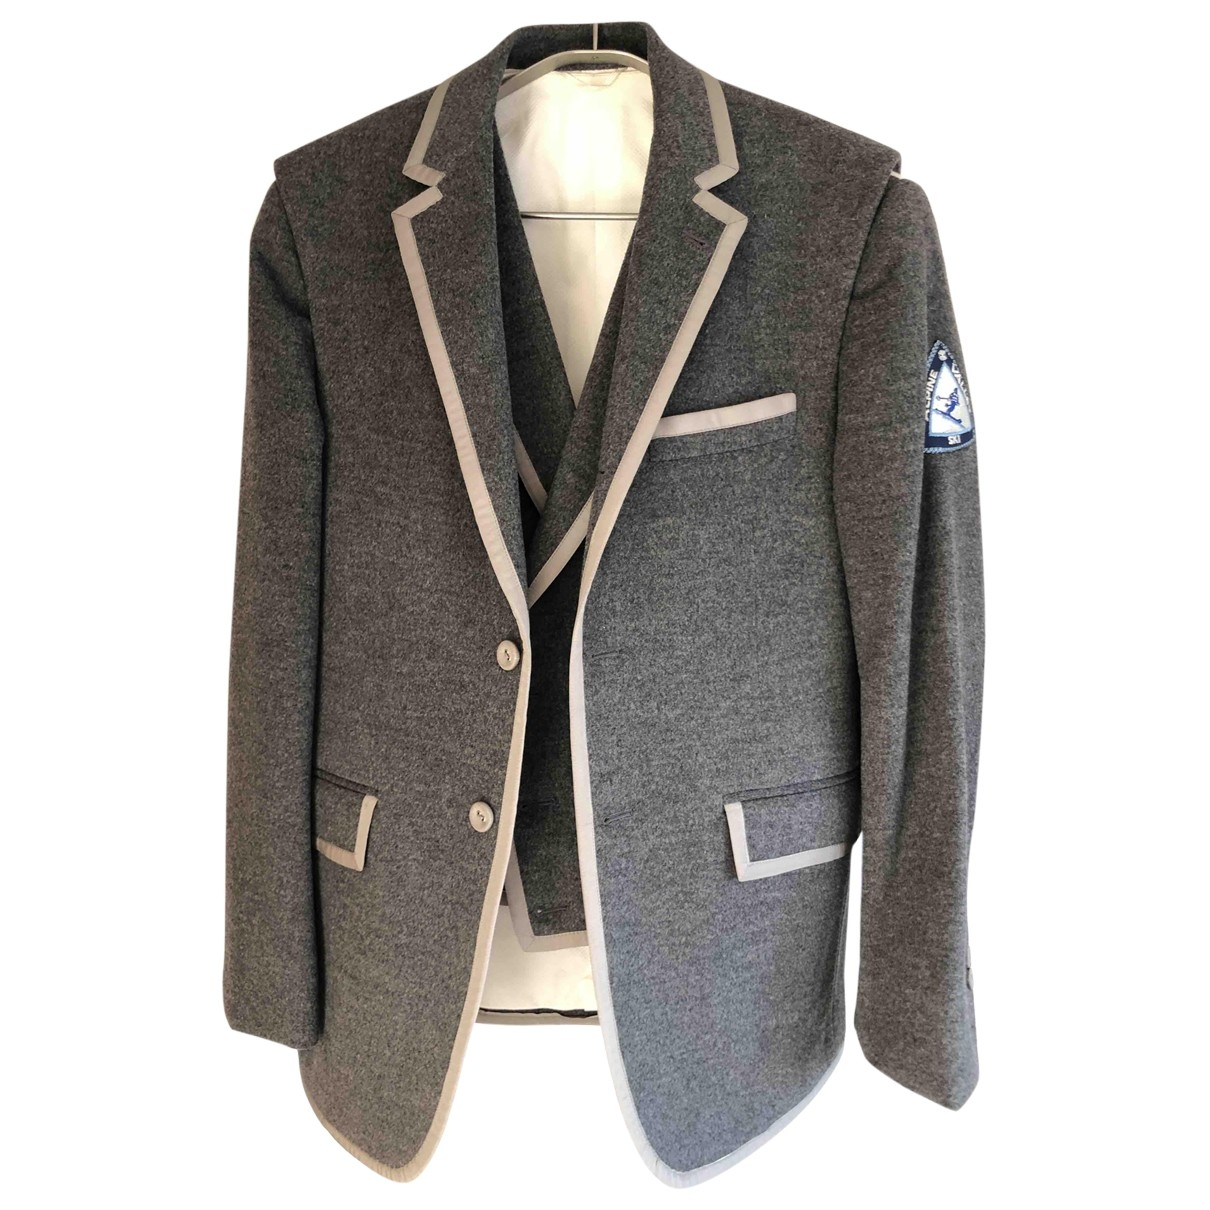 Thom Browne \N Grey Wool jacket  for Men 1 0 - 6